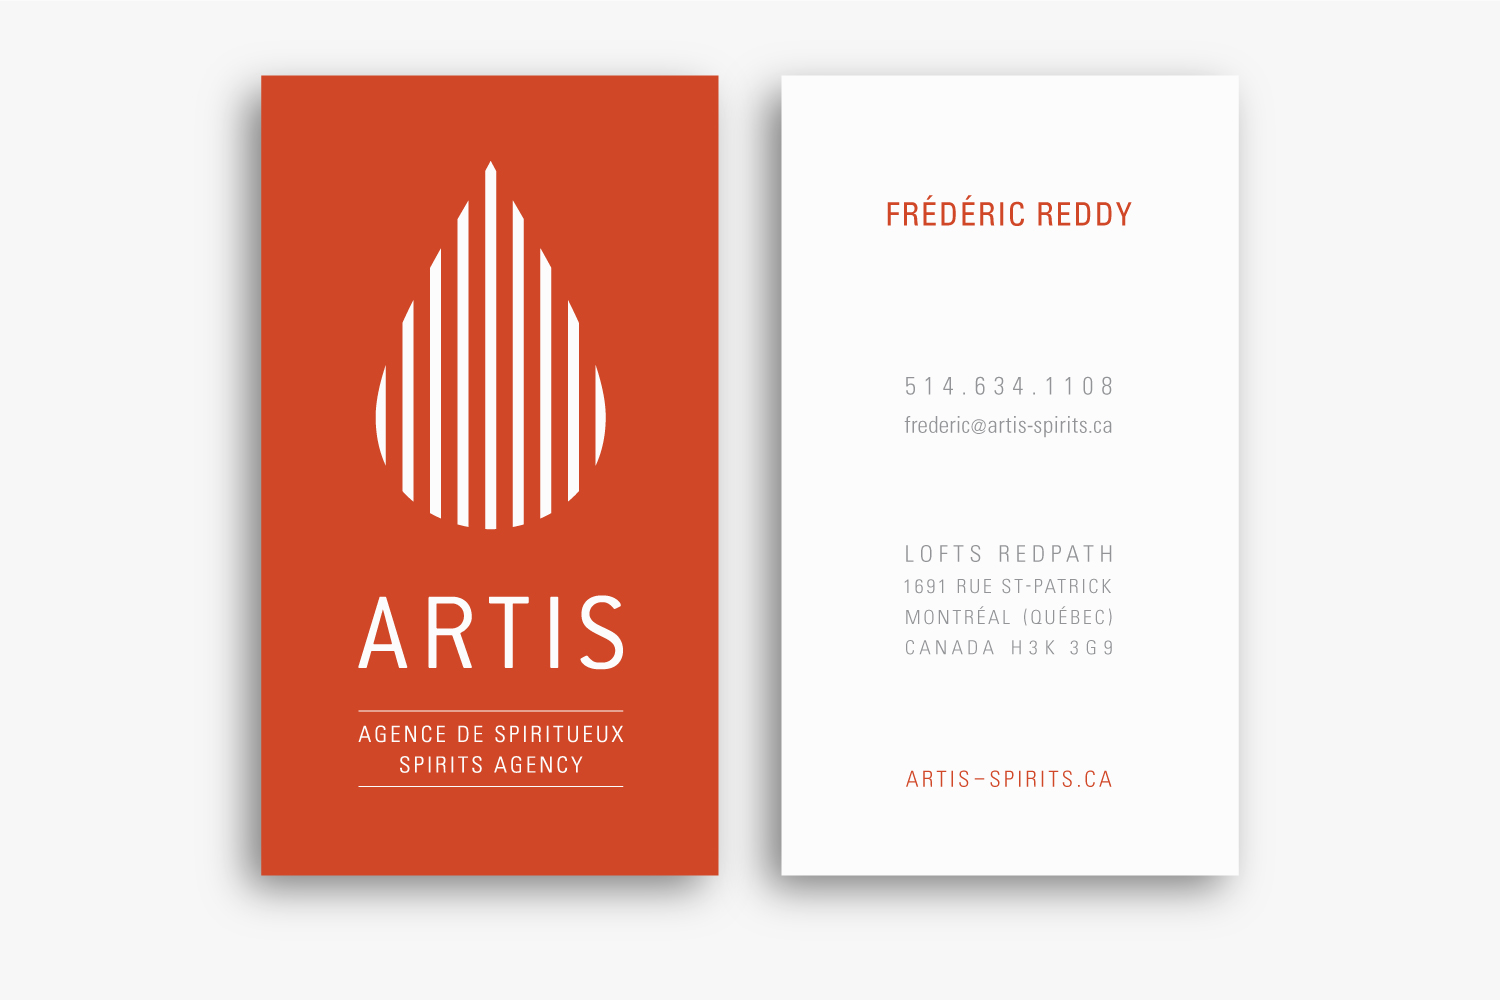 ARTIS – Spirits Agency – Identity & Stationery by Isabelle Robida – Infrarouge [Design & Culture] – 2015 – infrarouge.ca